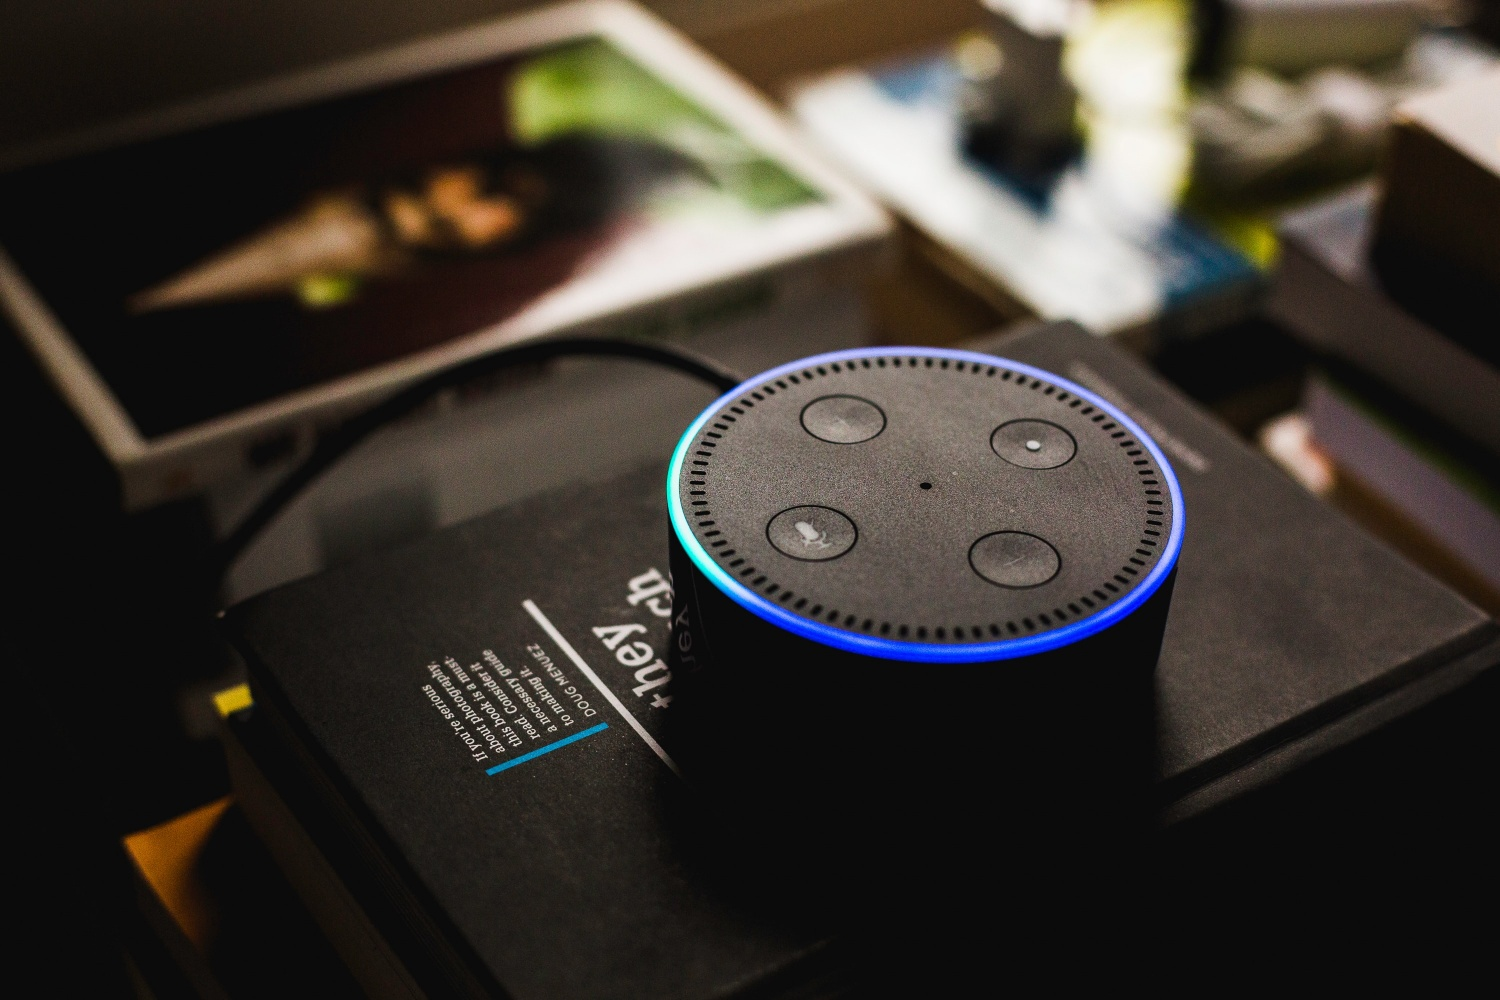 Amazon's 'Alexa' Learns to be Patient with New Feature Allowing Users to Take Longer Asking Questions